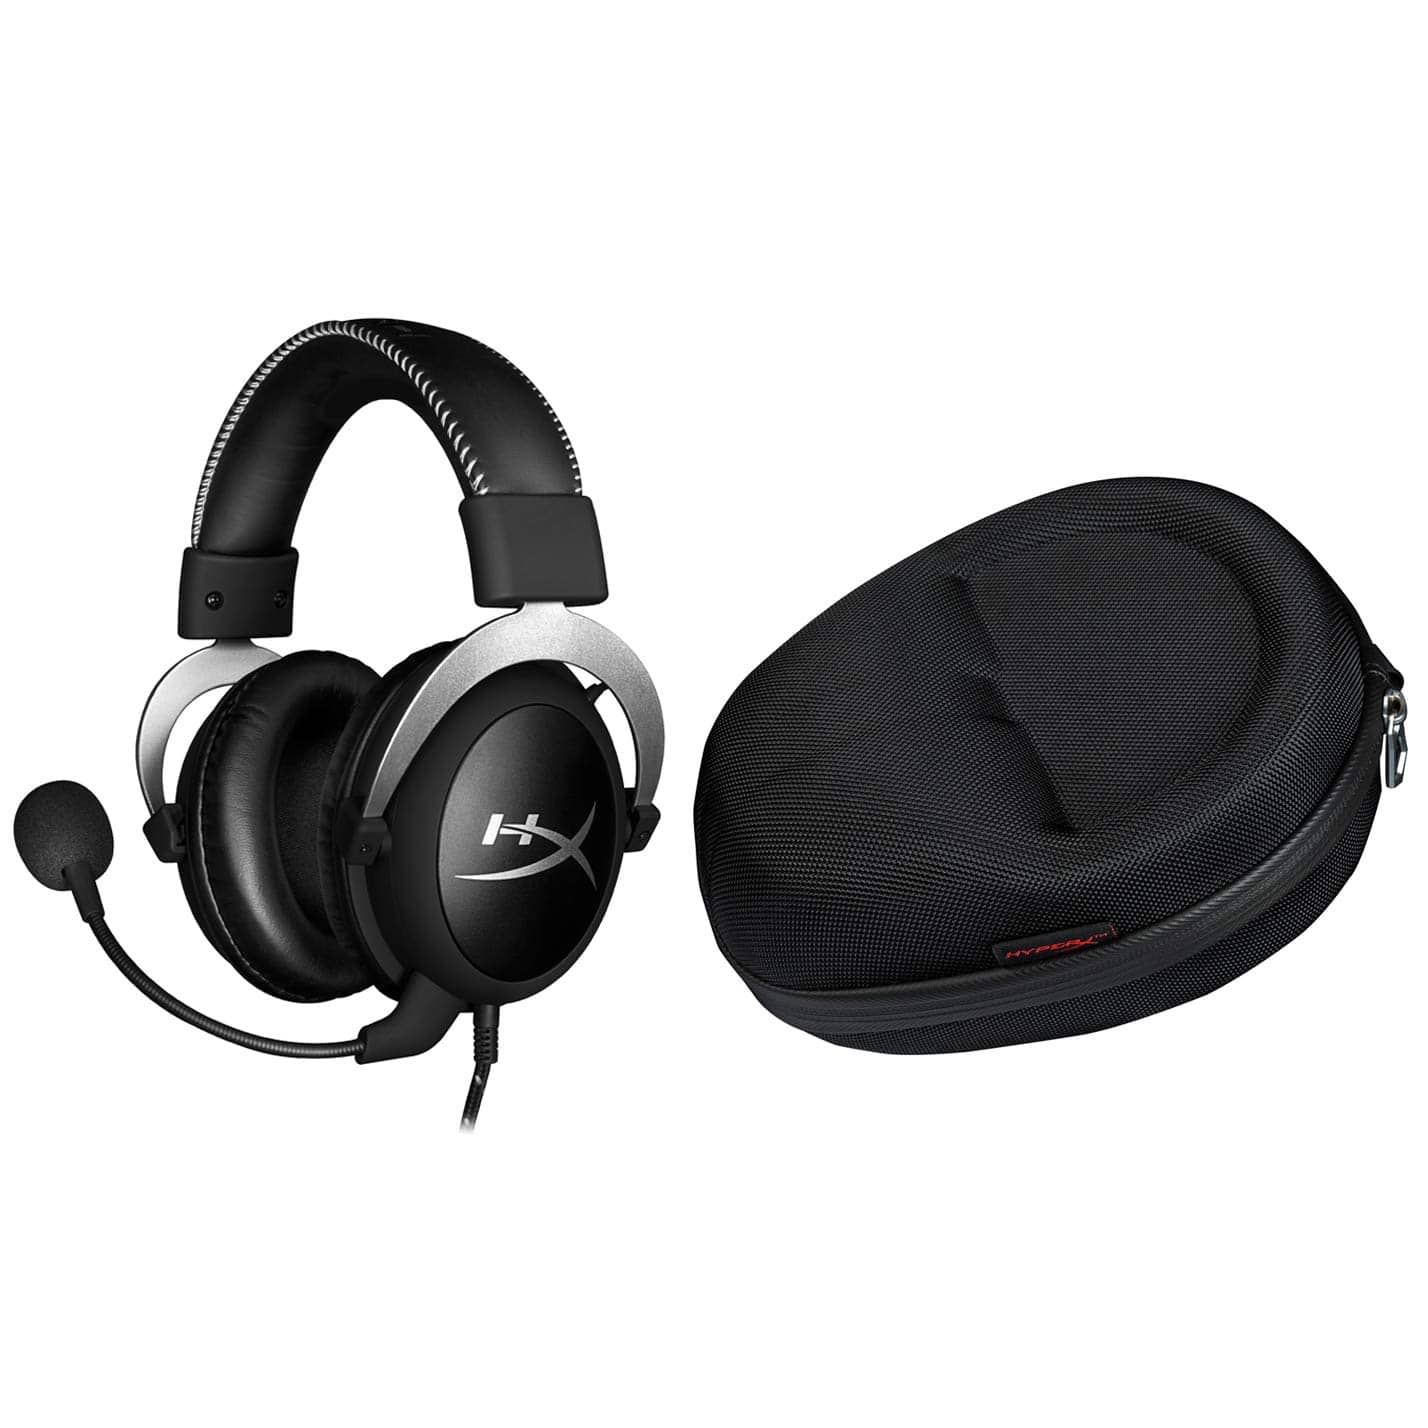 HyperX Cloud Pro Gaming Headset & Official Cloud Carrying Case $50 +free shipping